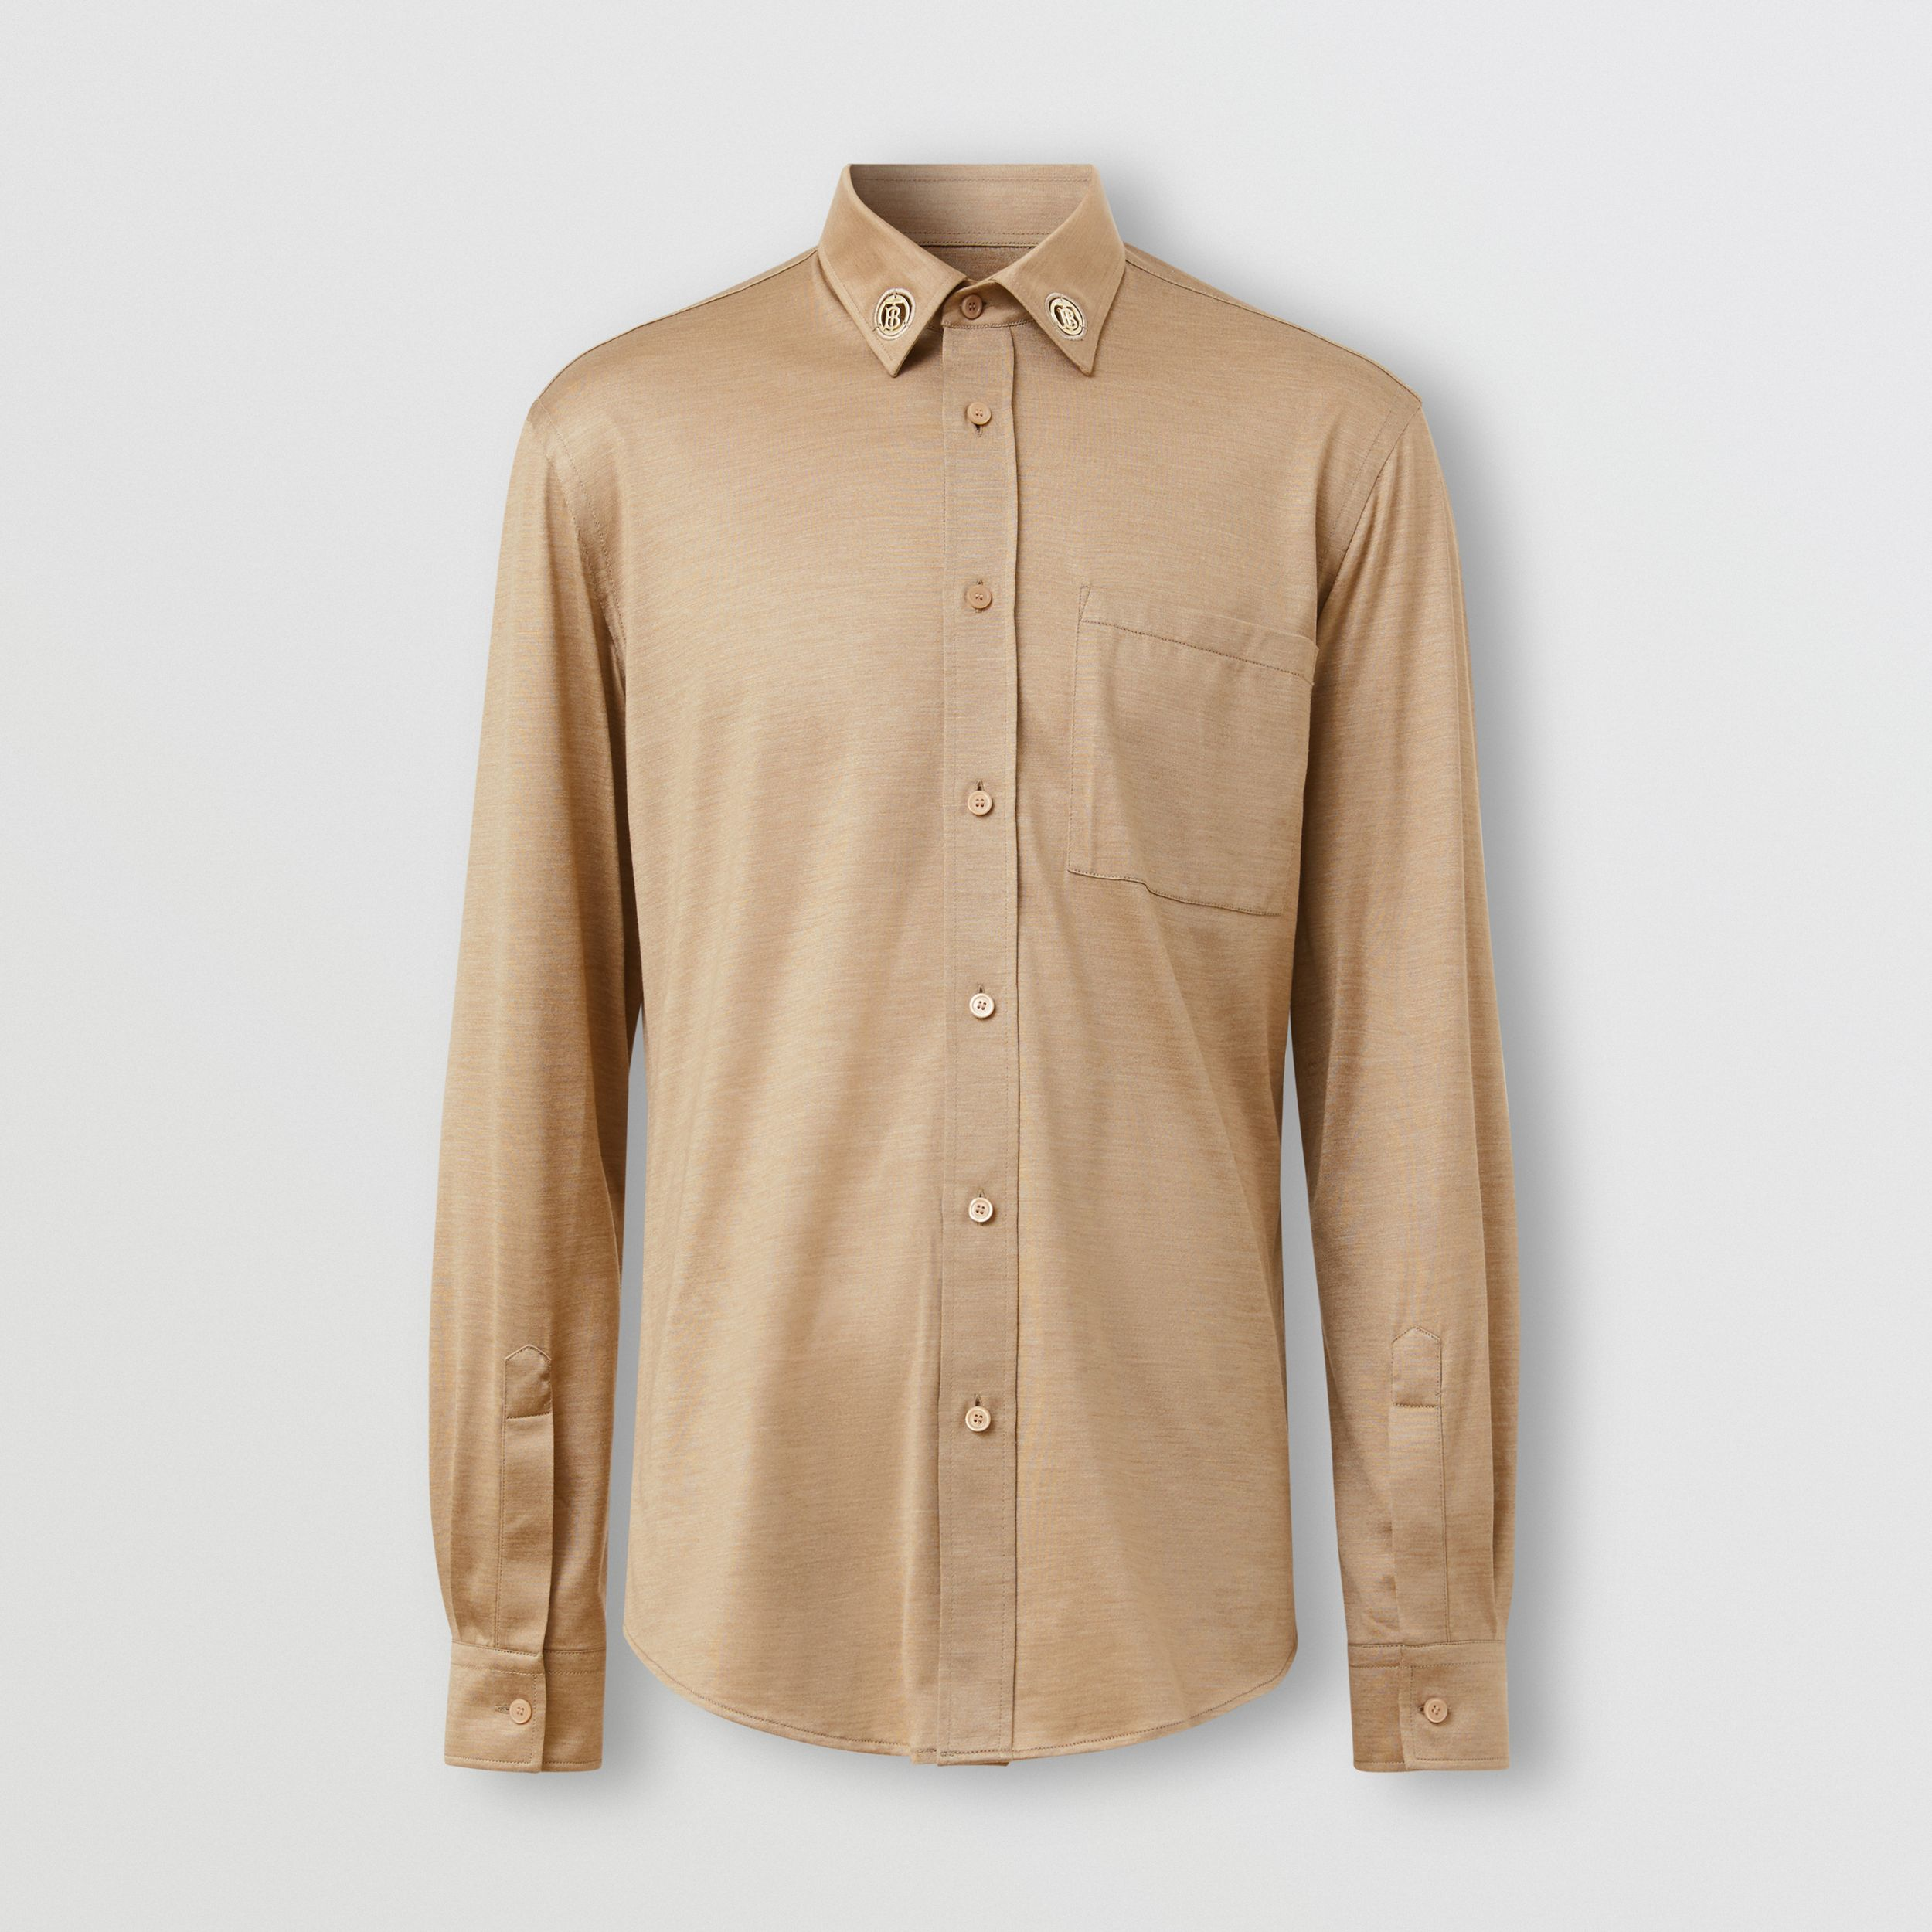 Classic Fit Monogram Motif Silk Jersey Shirt in Soft Fawn | Burberry Hong Kong S.A.R. - 4